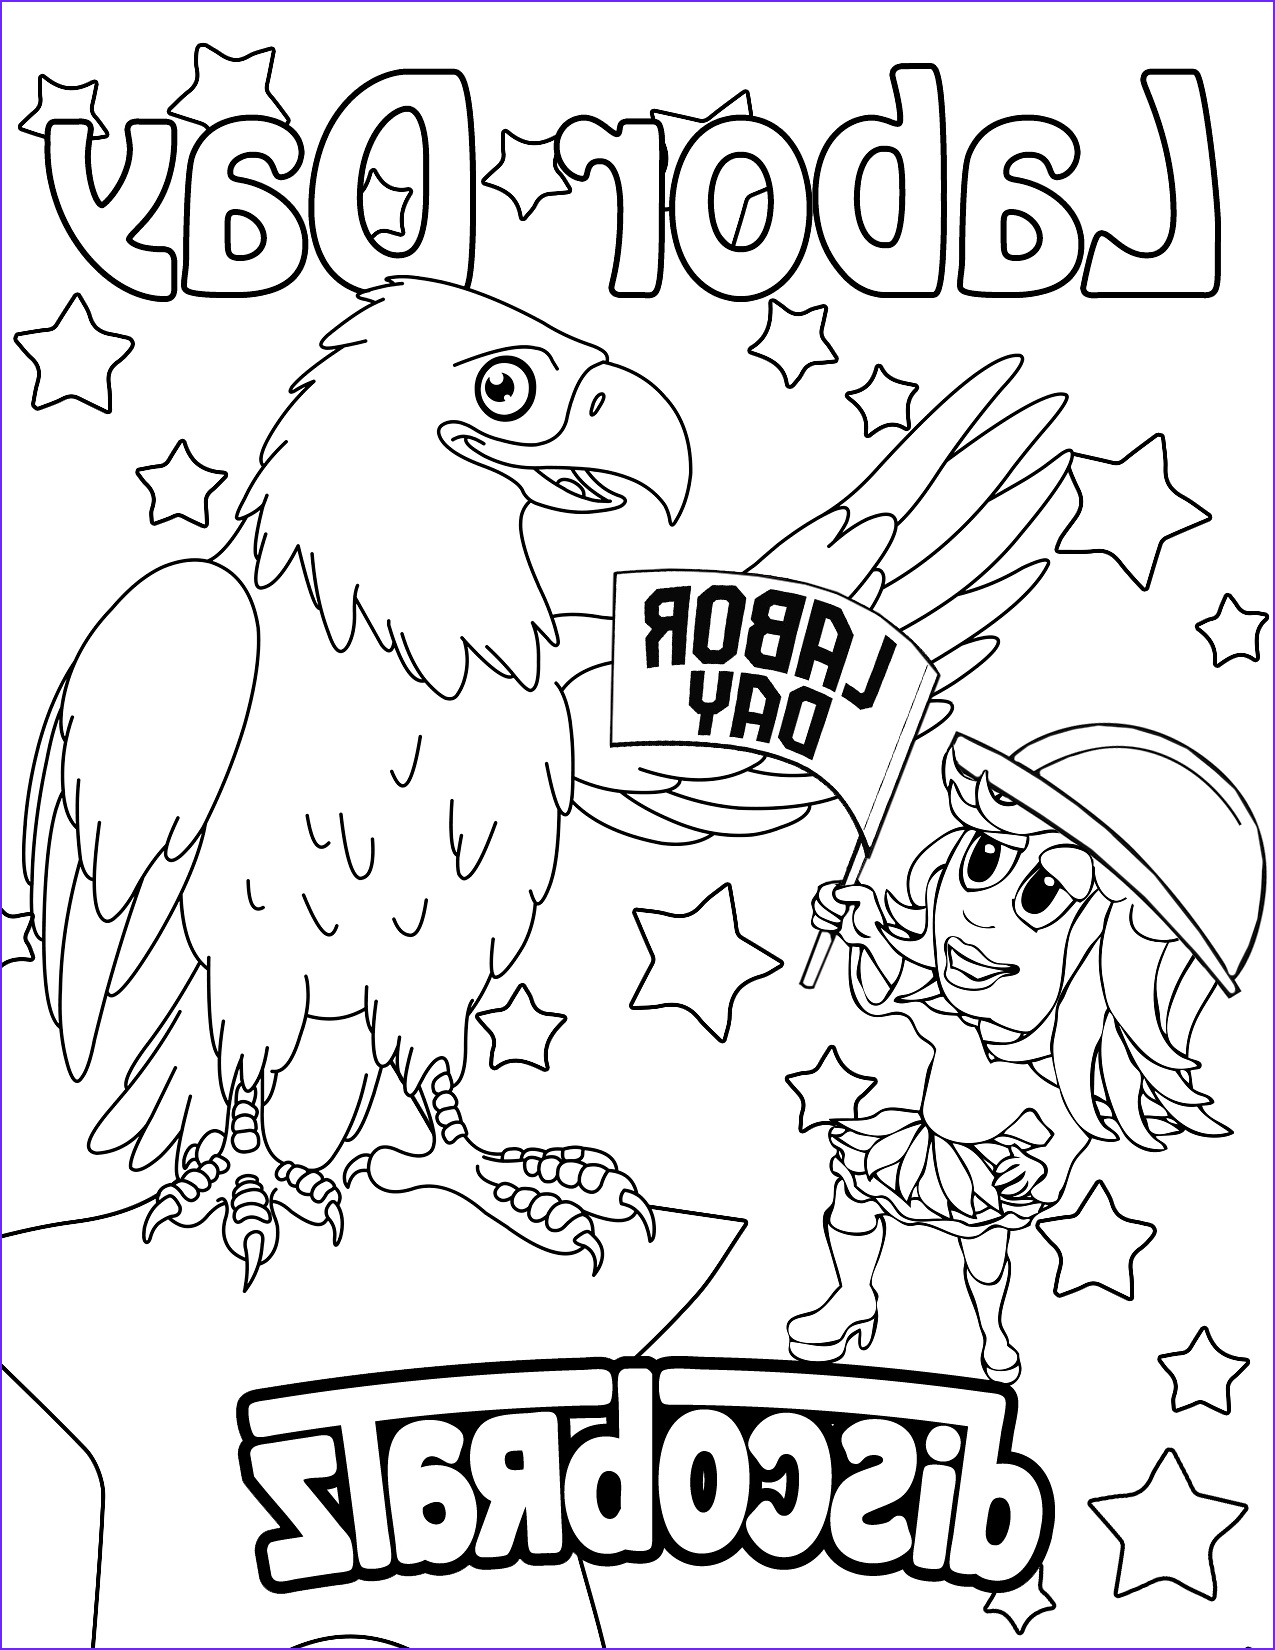 Labor Day Coloring Pages Cool Collection Discobratz Celebrates the Workers Of the World with A